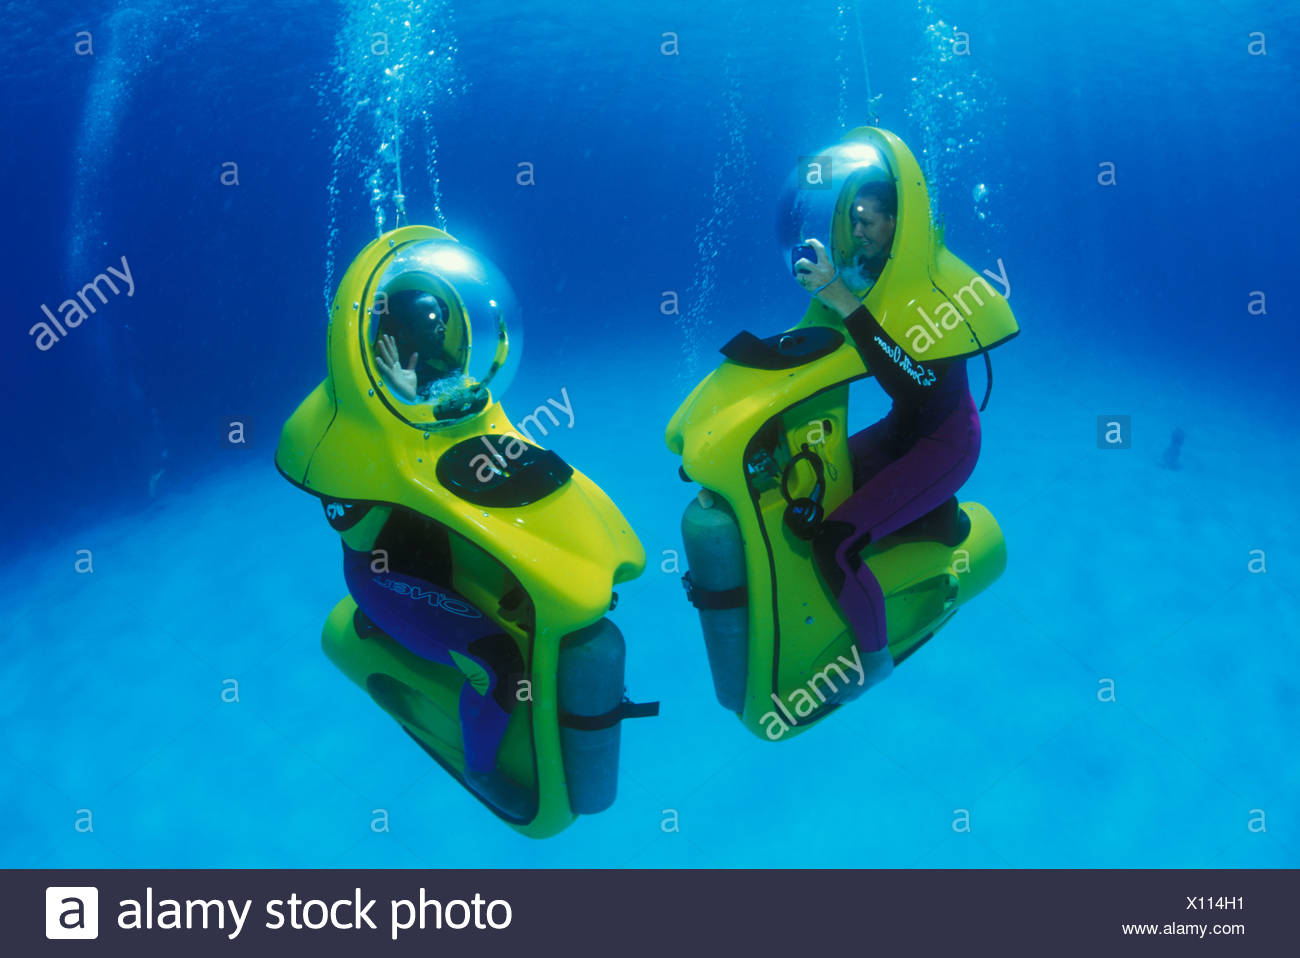 DIVERS ON UNDERWATER SCOOTERS CALLED BOB - Stock Image